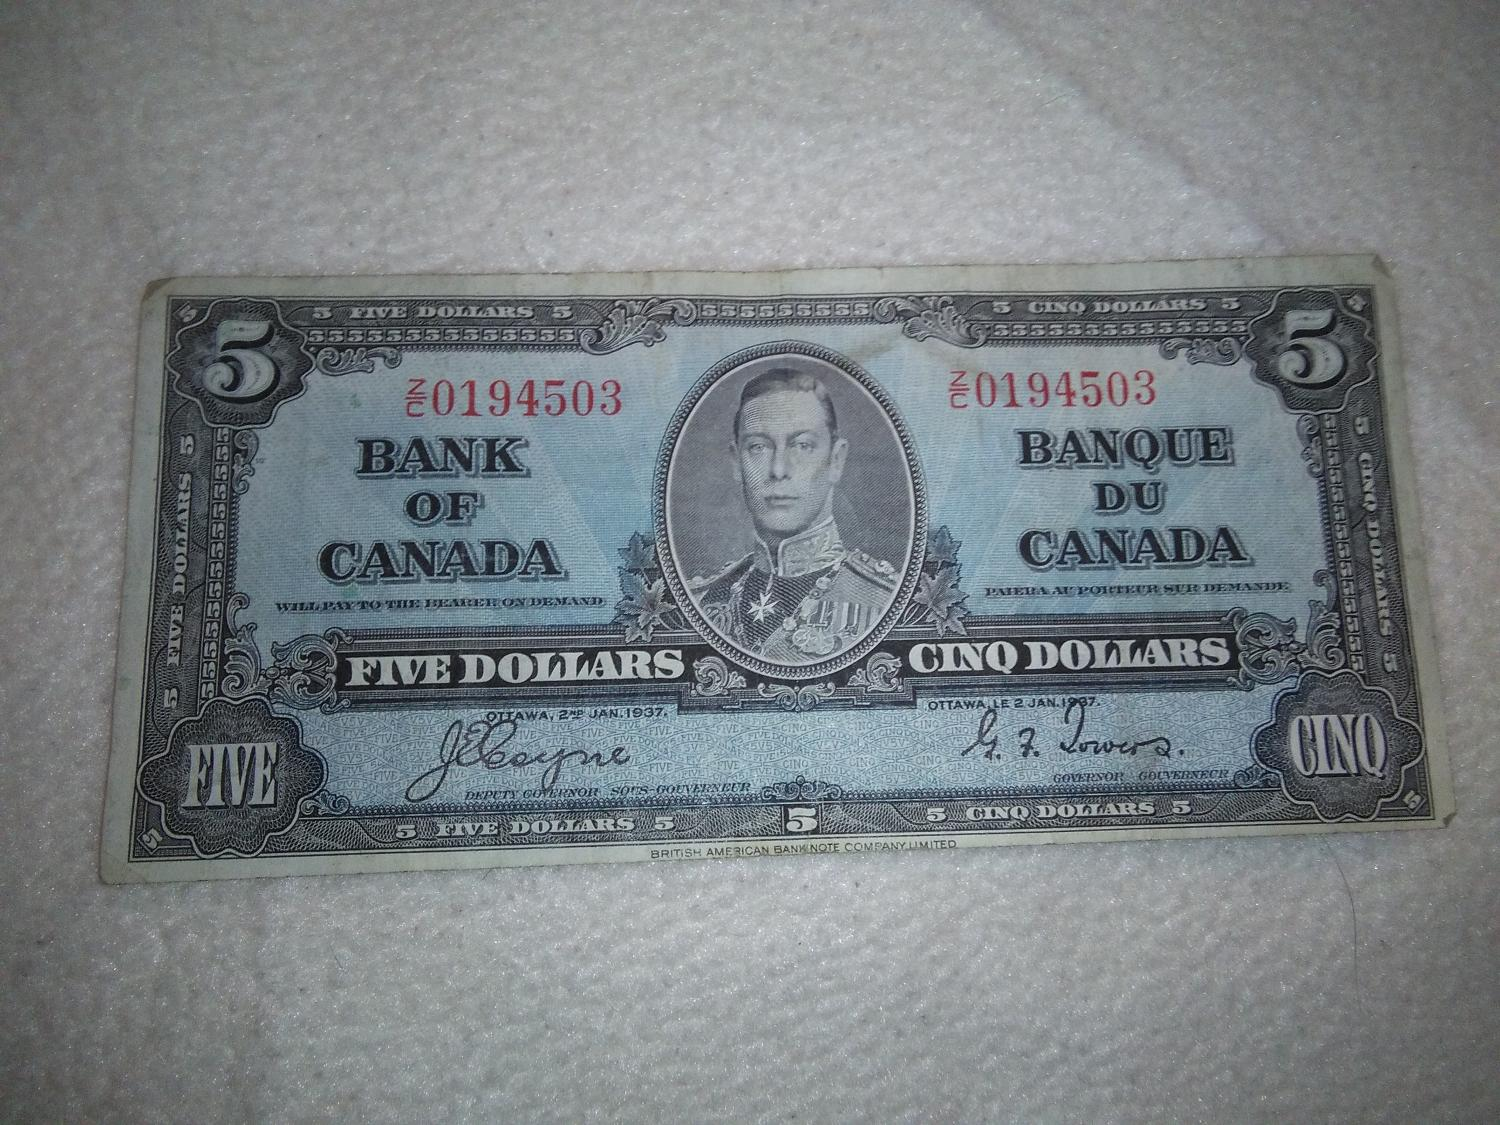 Best 1937 5 Dollar Bill for sale in Markham, Ontario for 2017